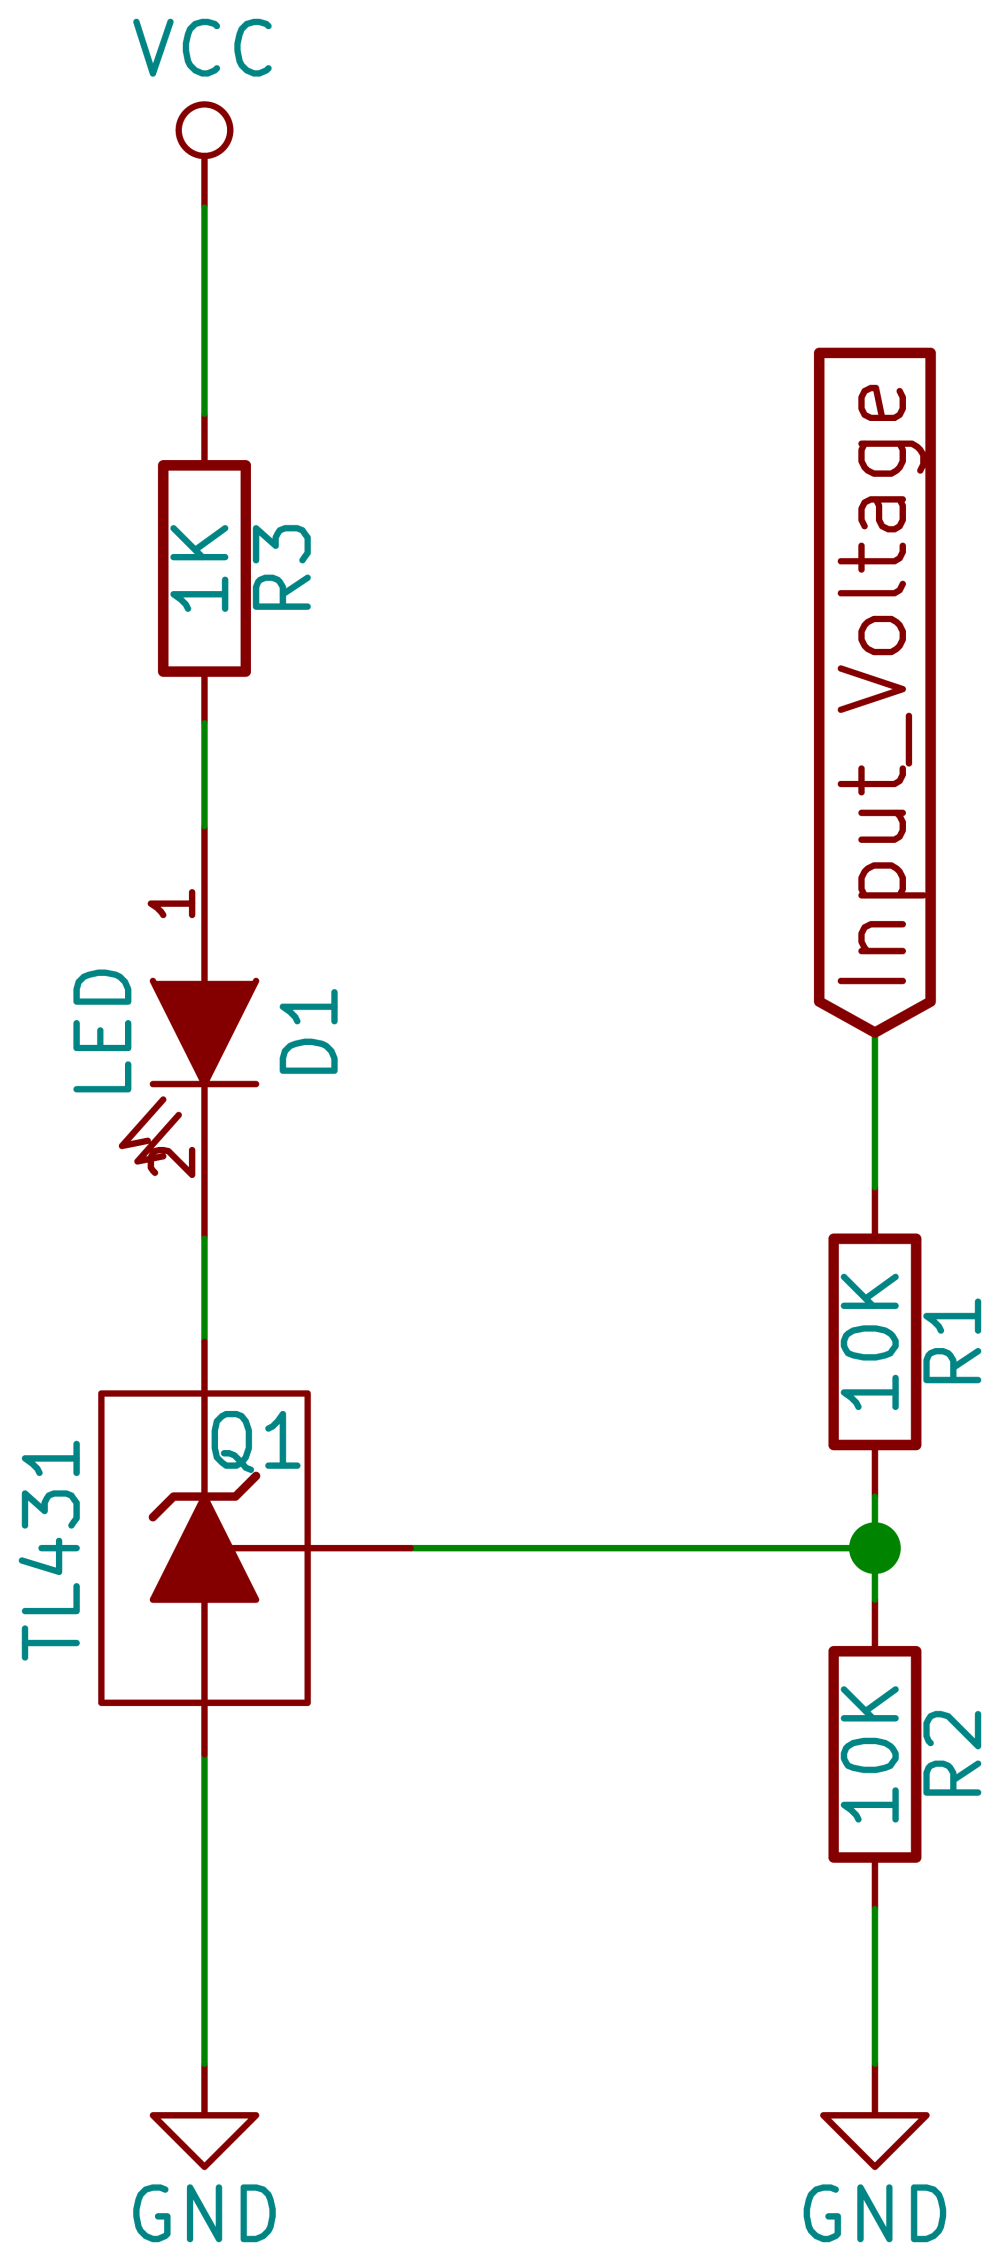 medium resolution of in the simplest circuit you could drive an led with a tl431 connect an led and a current limiting resistor up to the cathode and ground the anode of the